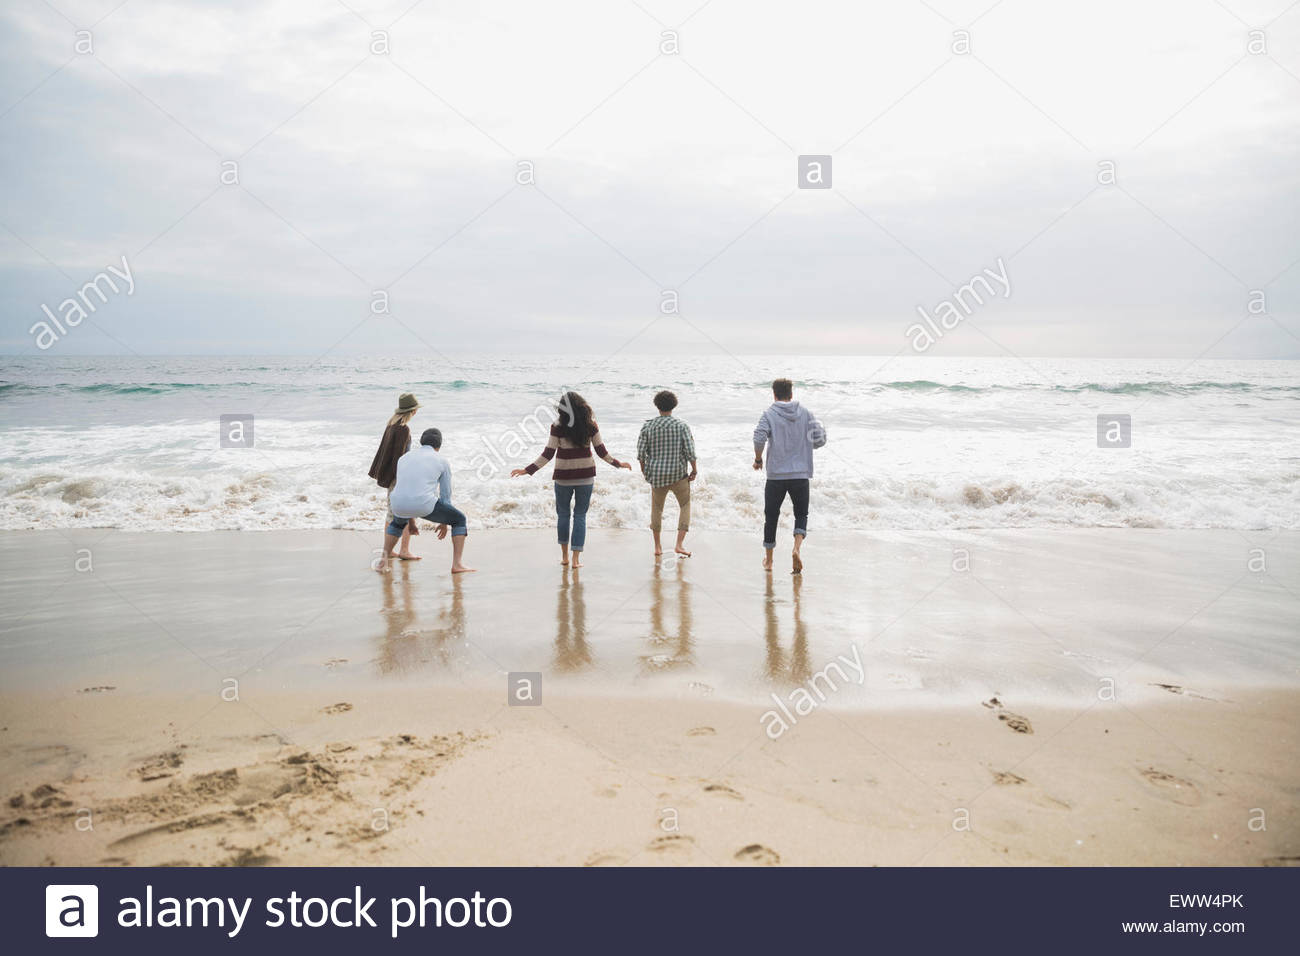 Friends playing in ocean surf at beach - Stock Image